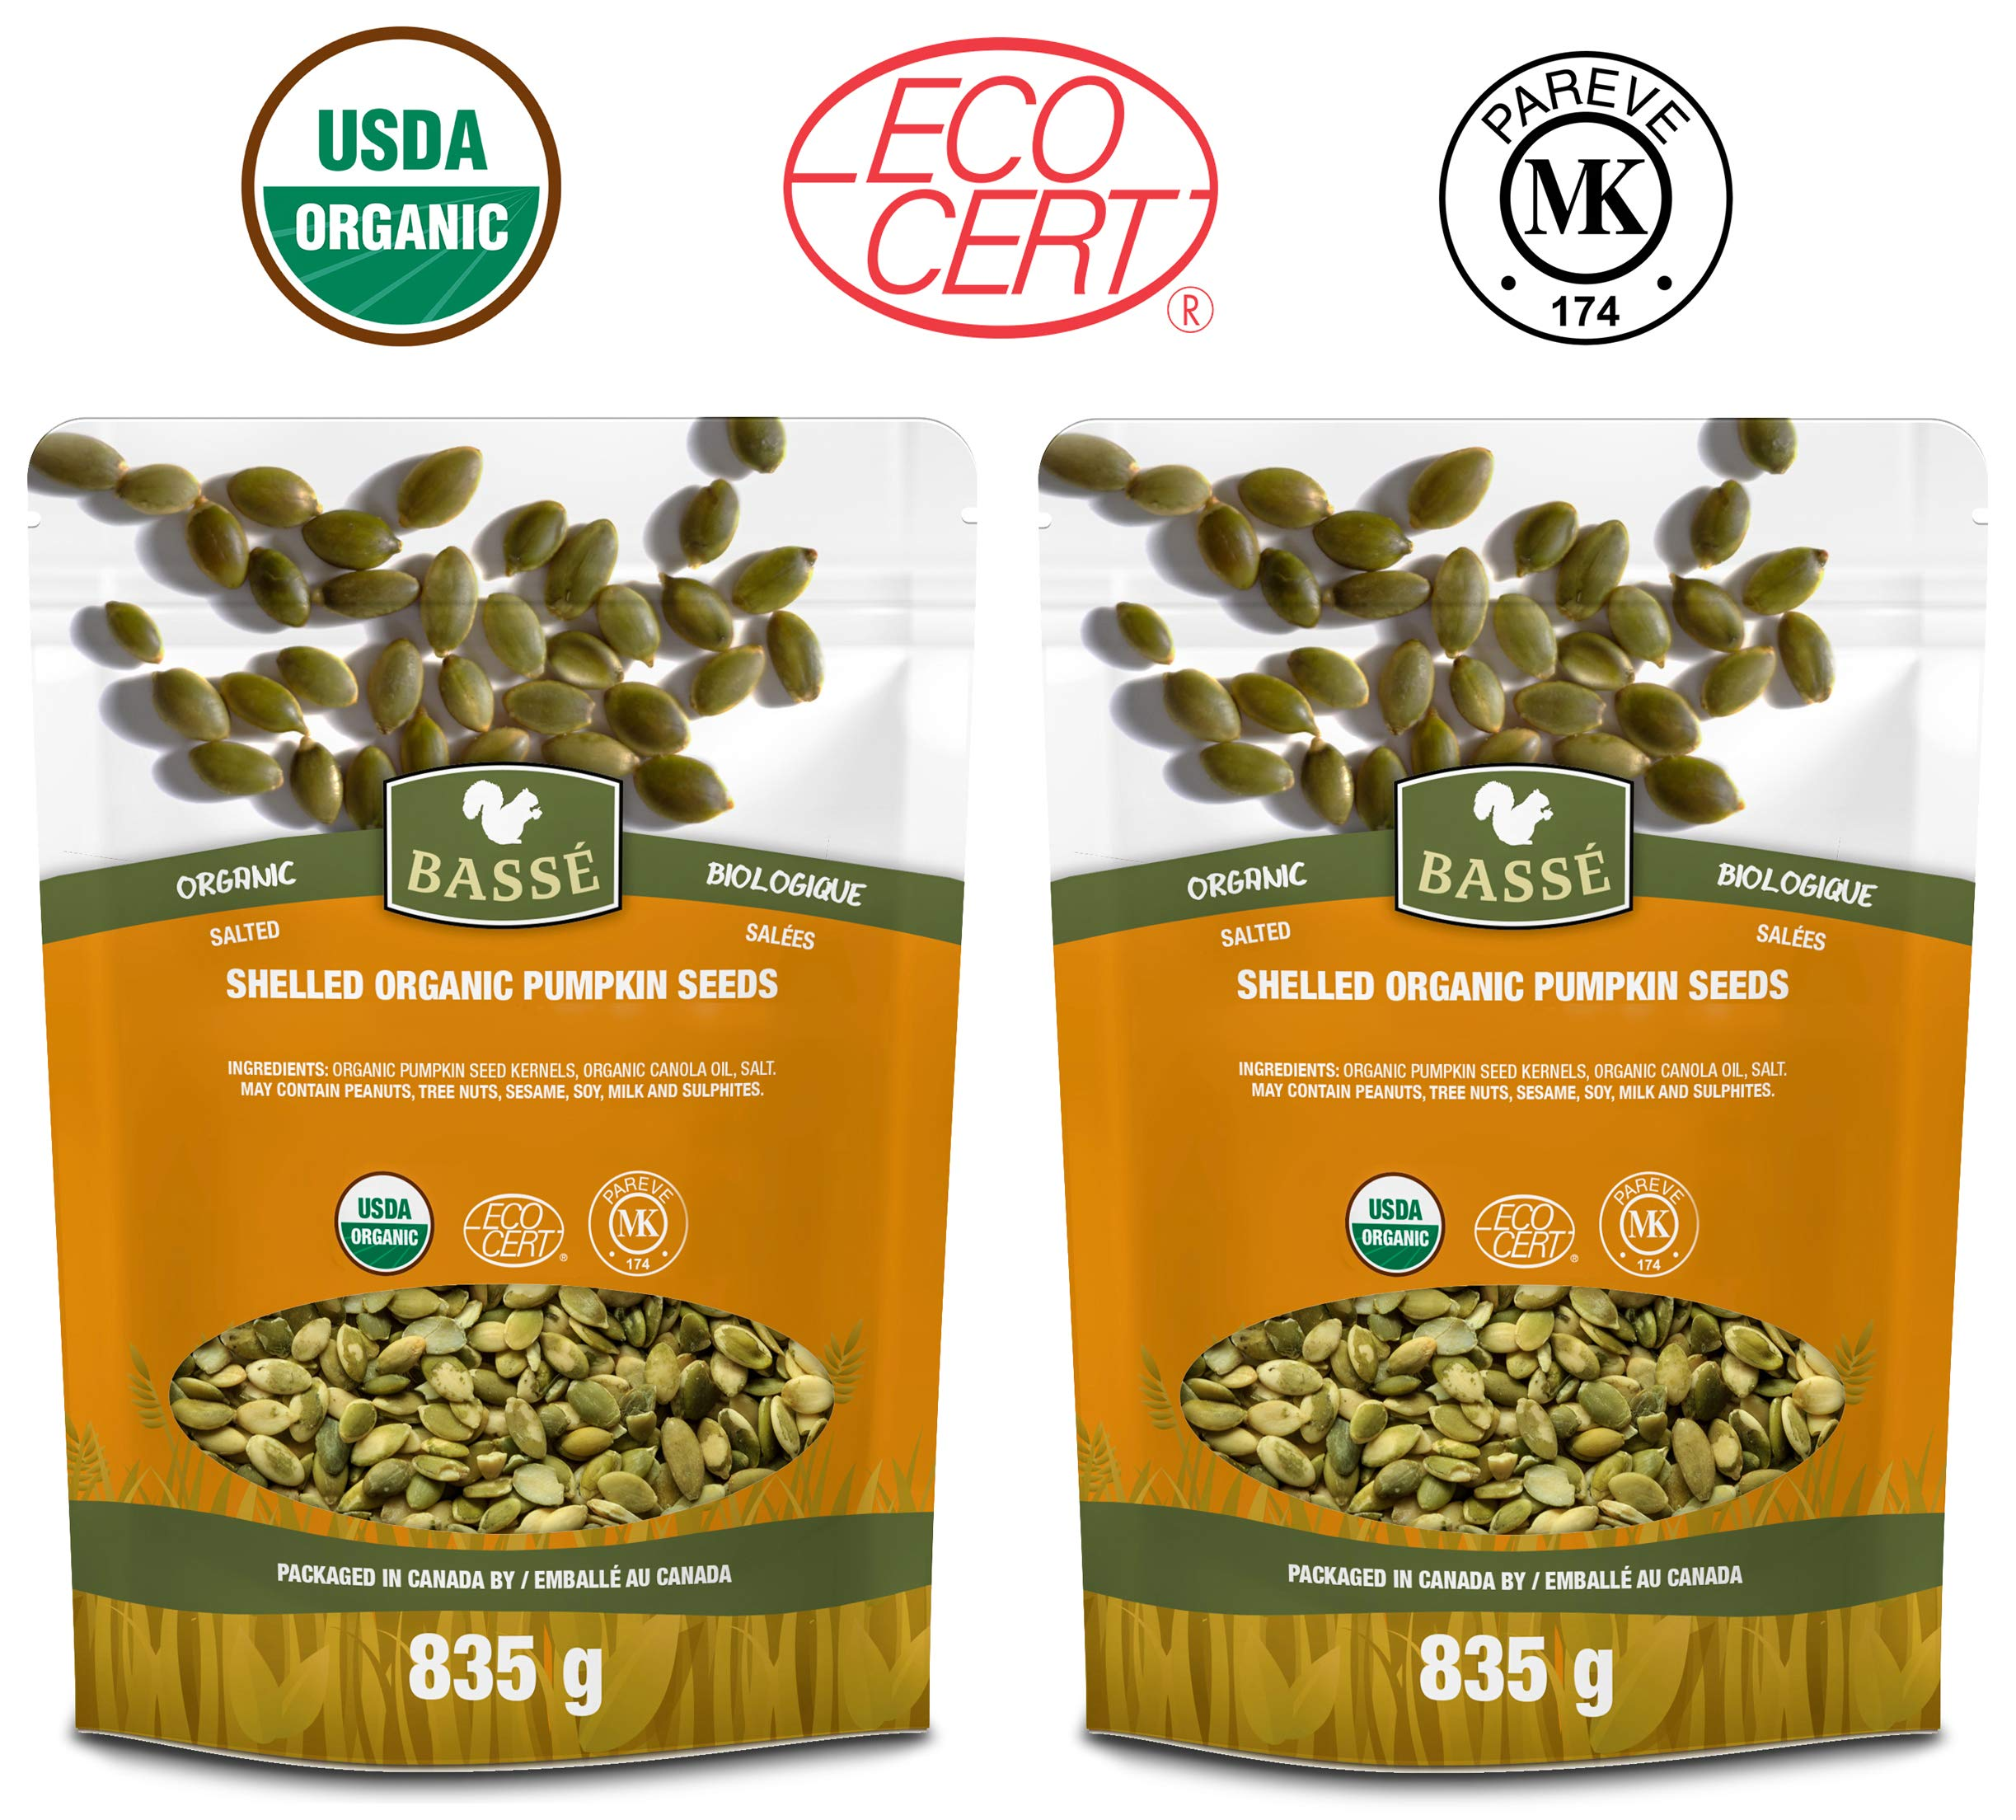 Basse Organic Pumpkin Seeds Kernels Nutritious, Salted, Wholesome, Superfood Snack 2 x 30oz